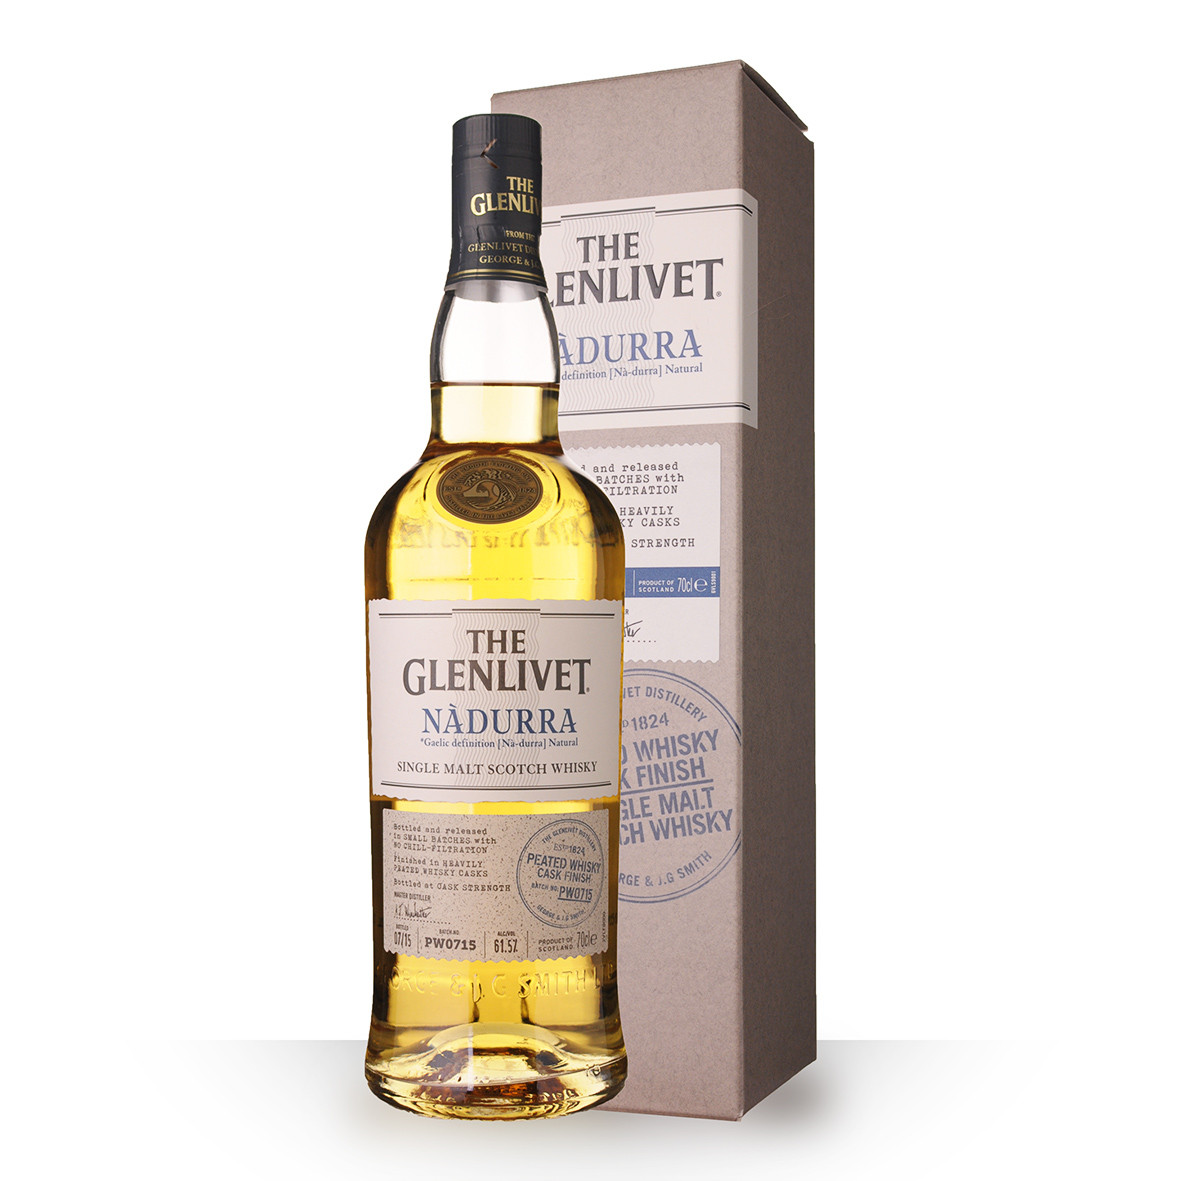 Whisky The Glenlivet Nàdurra Peated Whisky Cask Finish 70cl Etui www.odyssee-vins.com